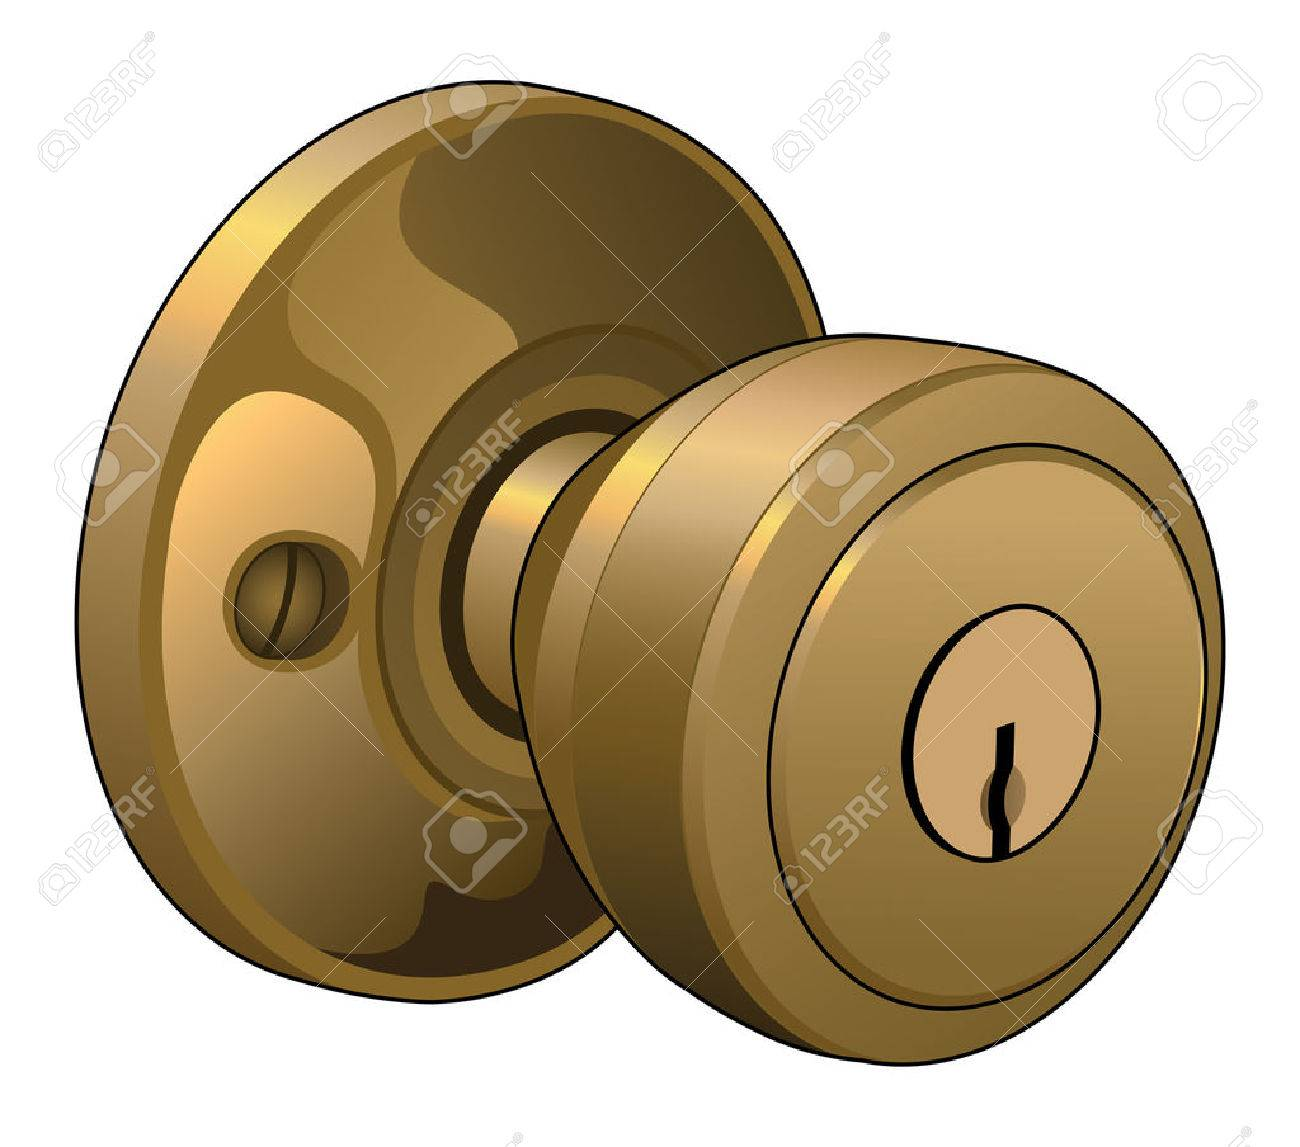 Door Knob Is An Illustration Of A Doorknob In A Reflective Gold ...